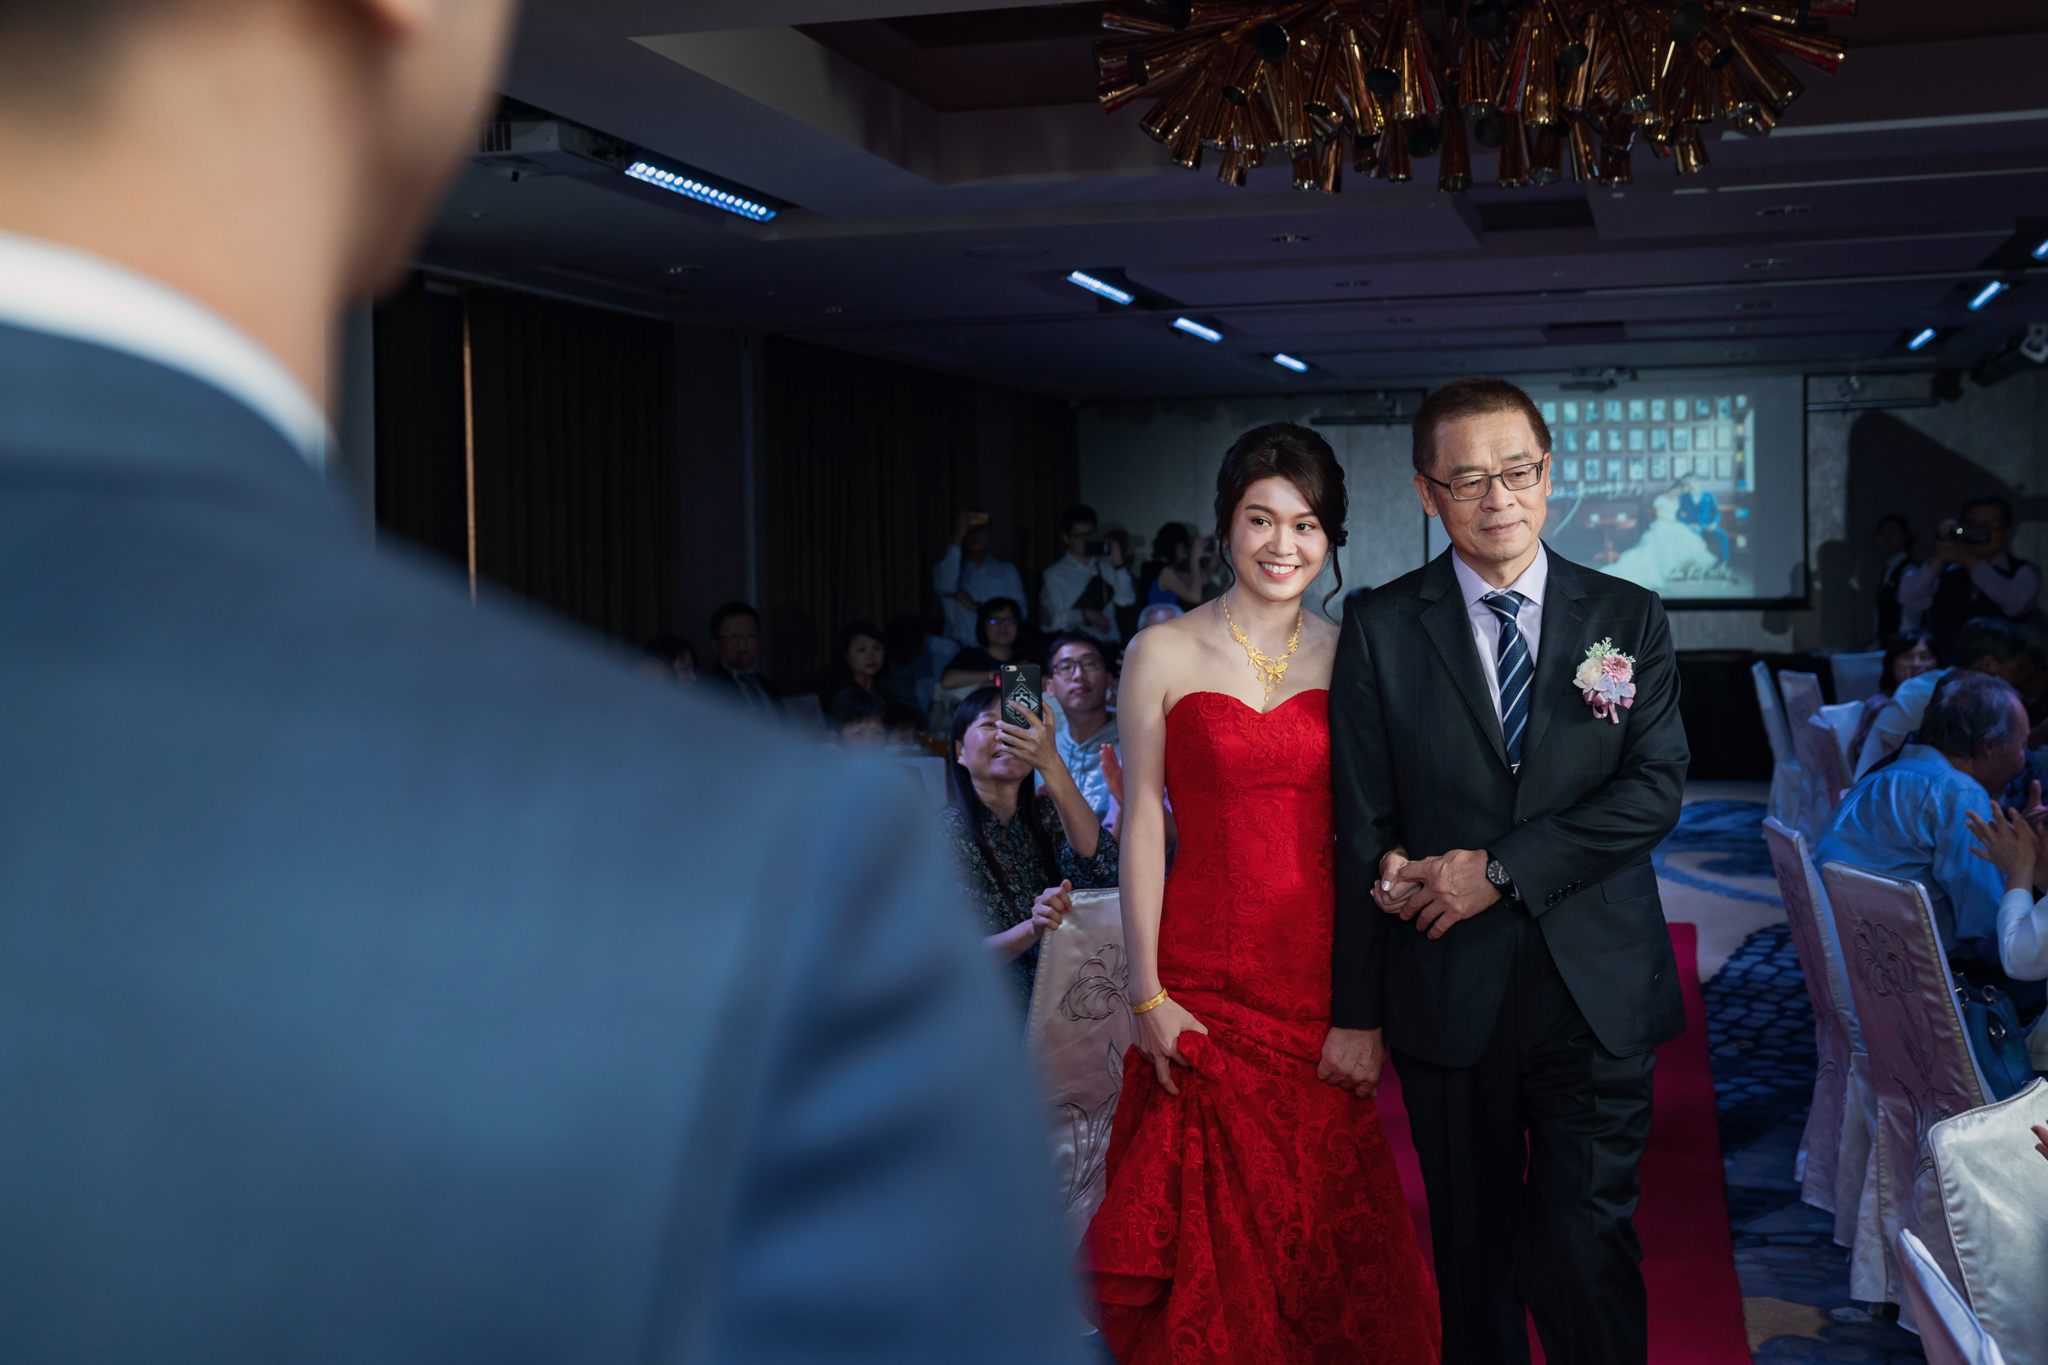 Donfer, EASTERN WEDDING, 新竹喜來登, 婚禮紀錄, Wedding Day, Sony